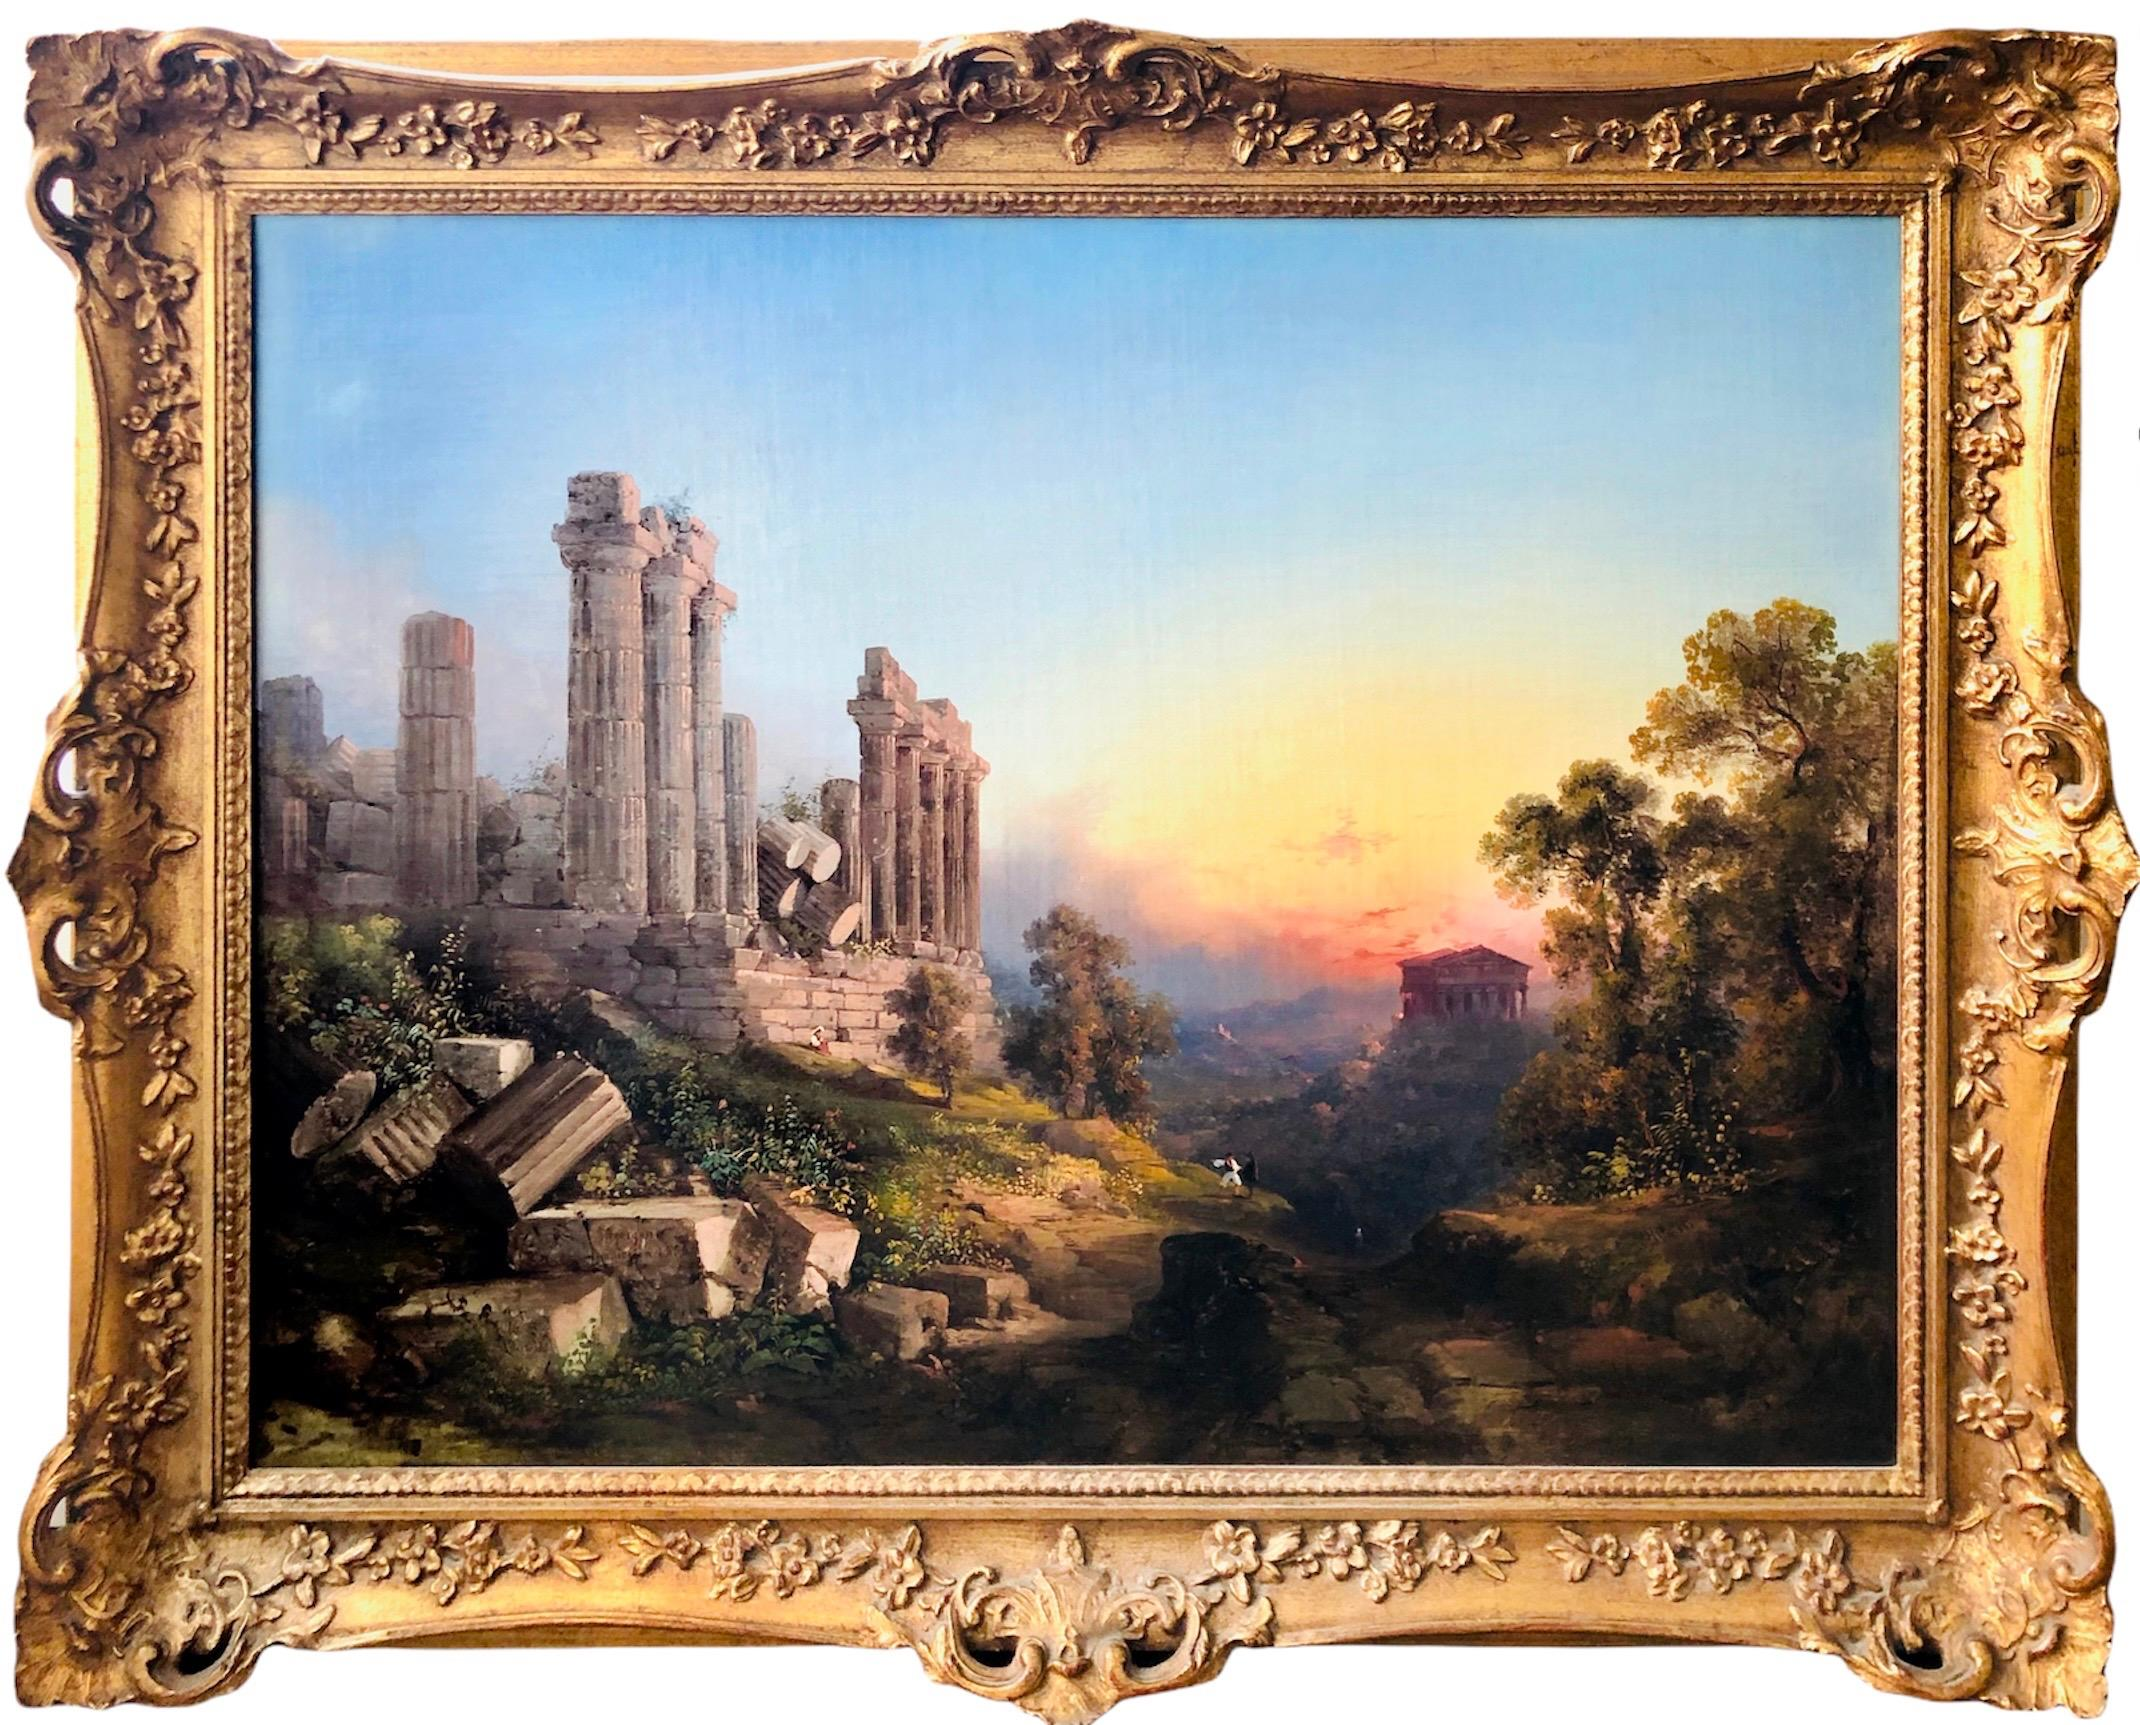 19th century German romantic landscape painting - The Temple Valley in Sicily